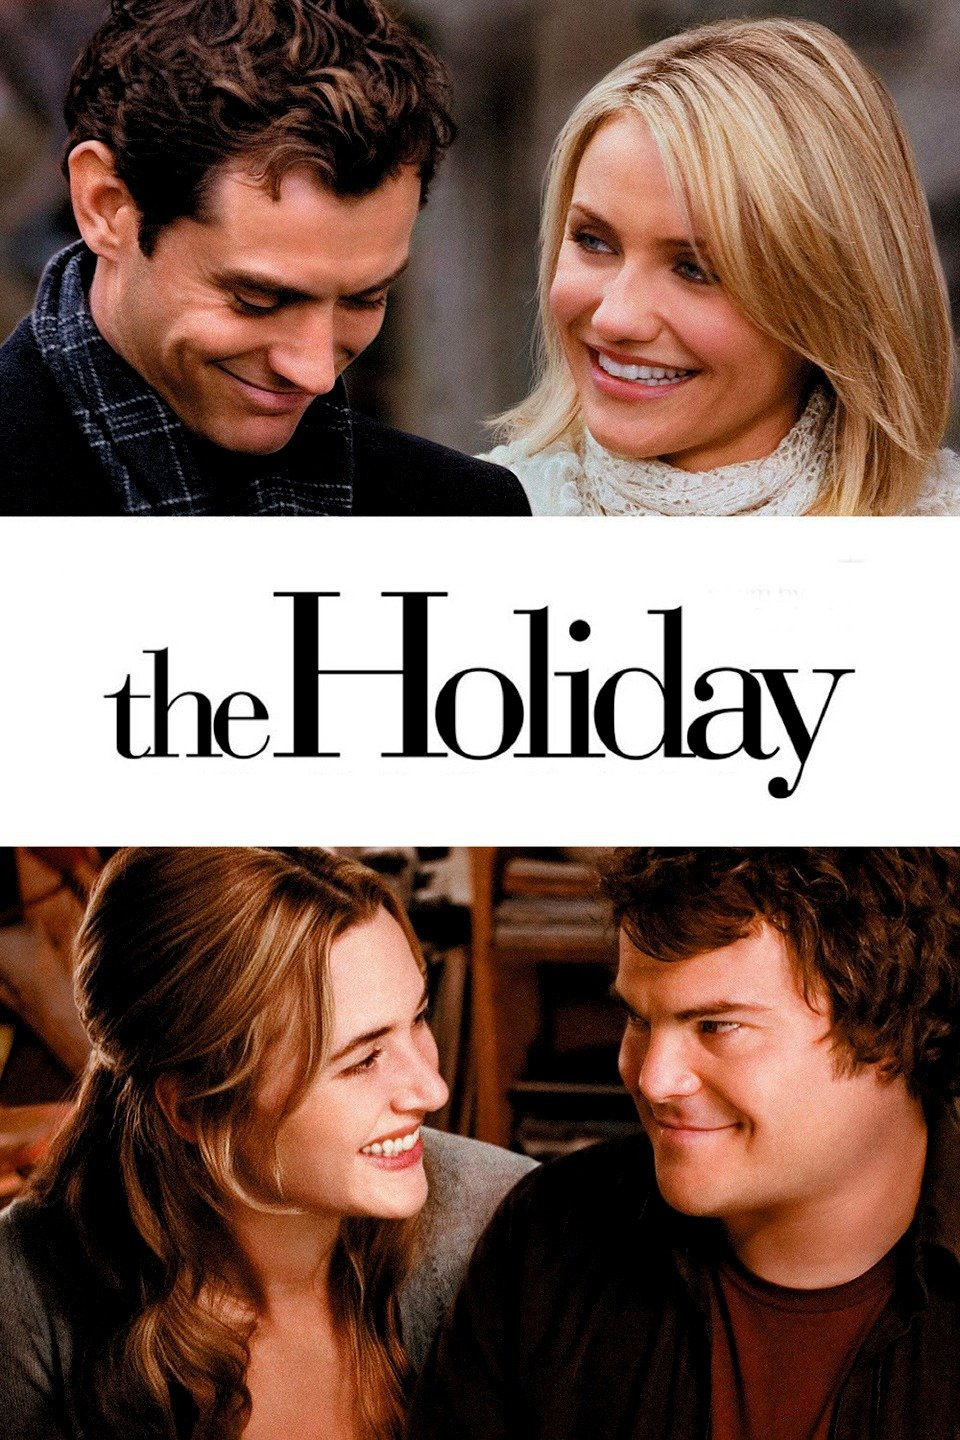 The Holiday - Ok, anyone who knows me will tell you I'm a sucker for a soppy rom-com. And in some Christmas spirit and how can you pass up The Holiday? It's the feel good movie you need in your life. So curl up on the couch, enjoy a Christmas goodie or two, and enjoy.